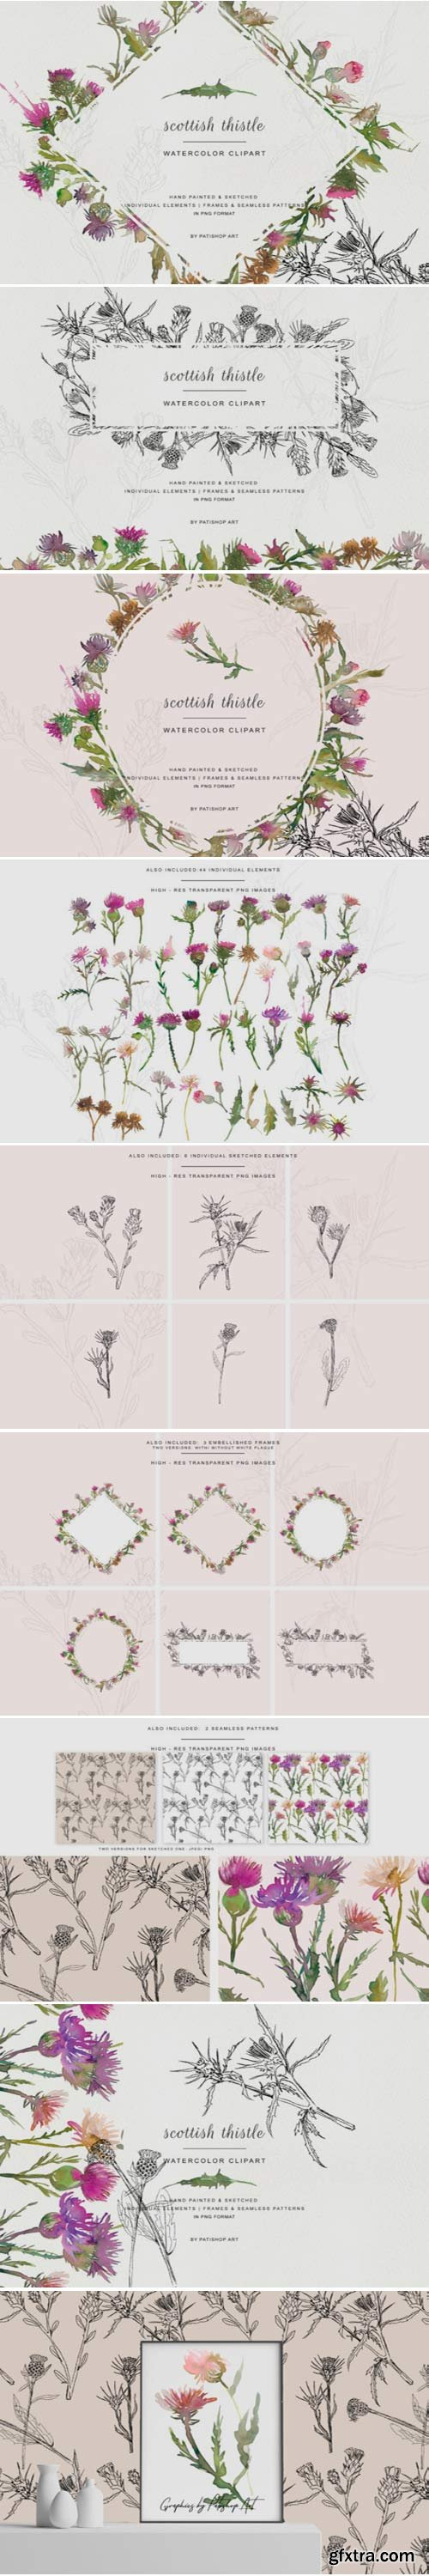 Hand Painted & Sketched Thistle Clip Art 1584504